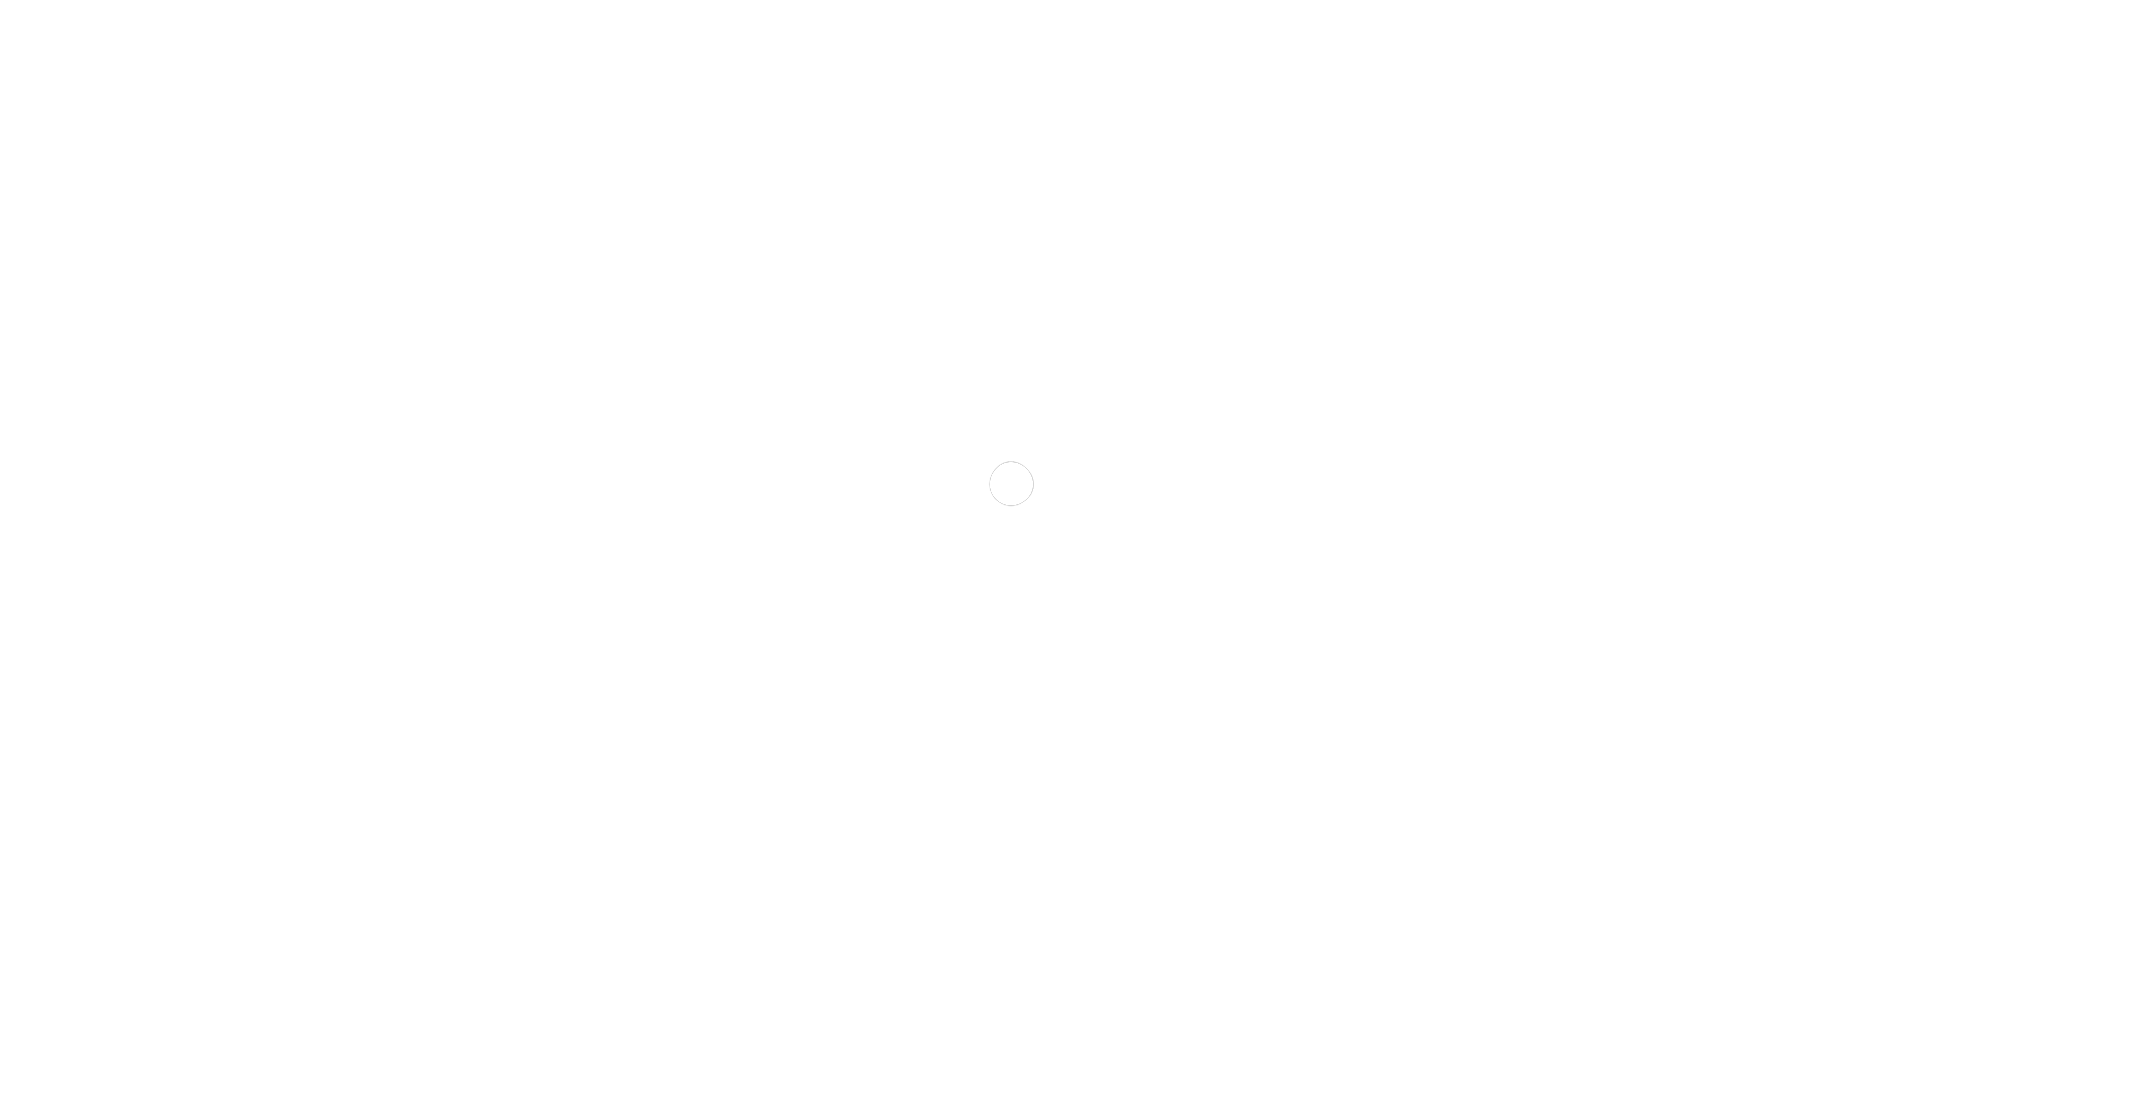 Playboy_white.png